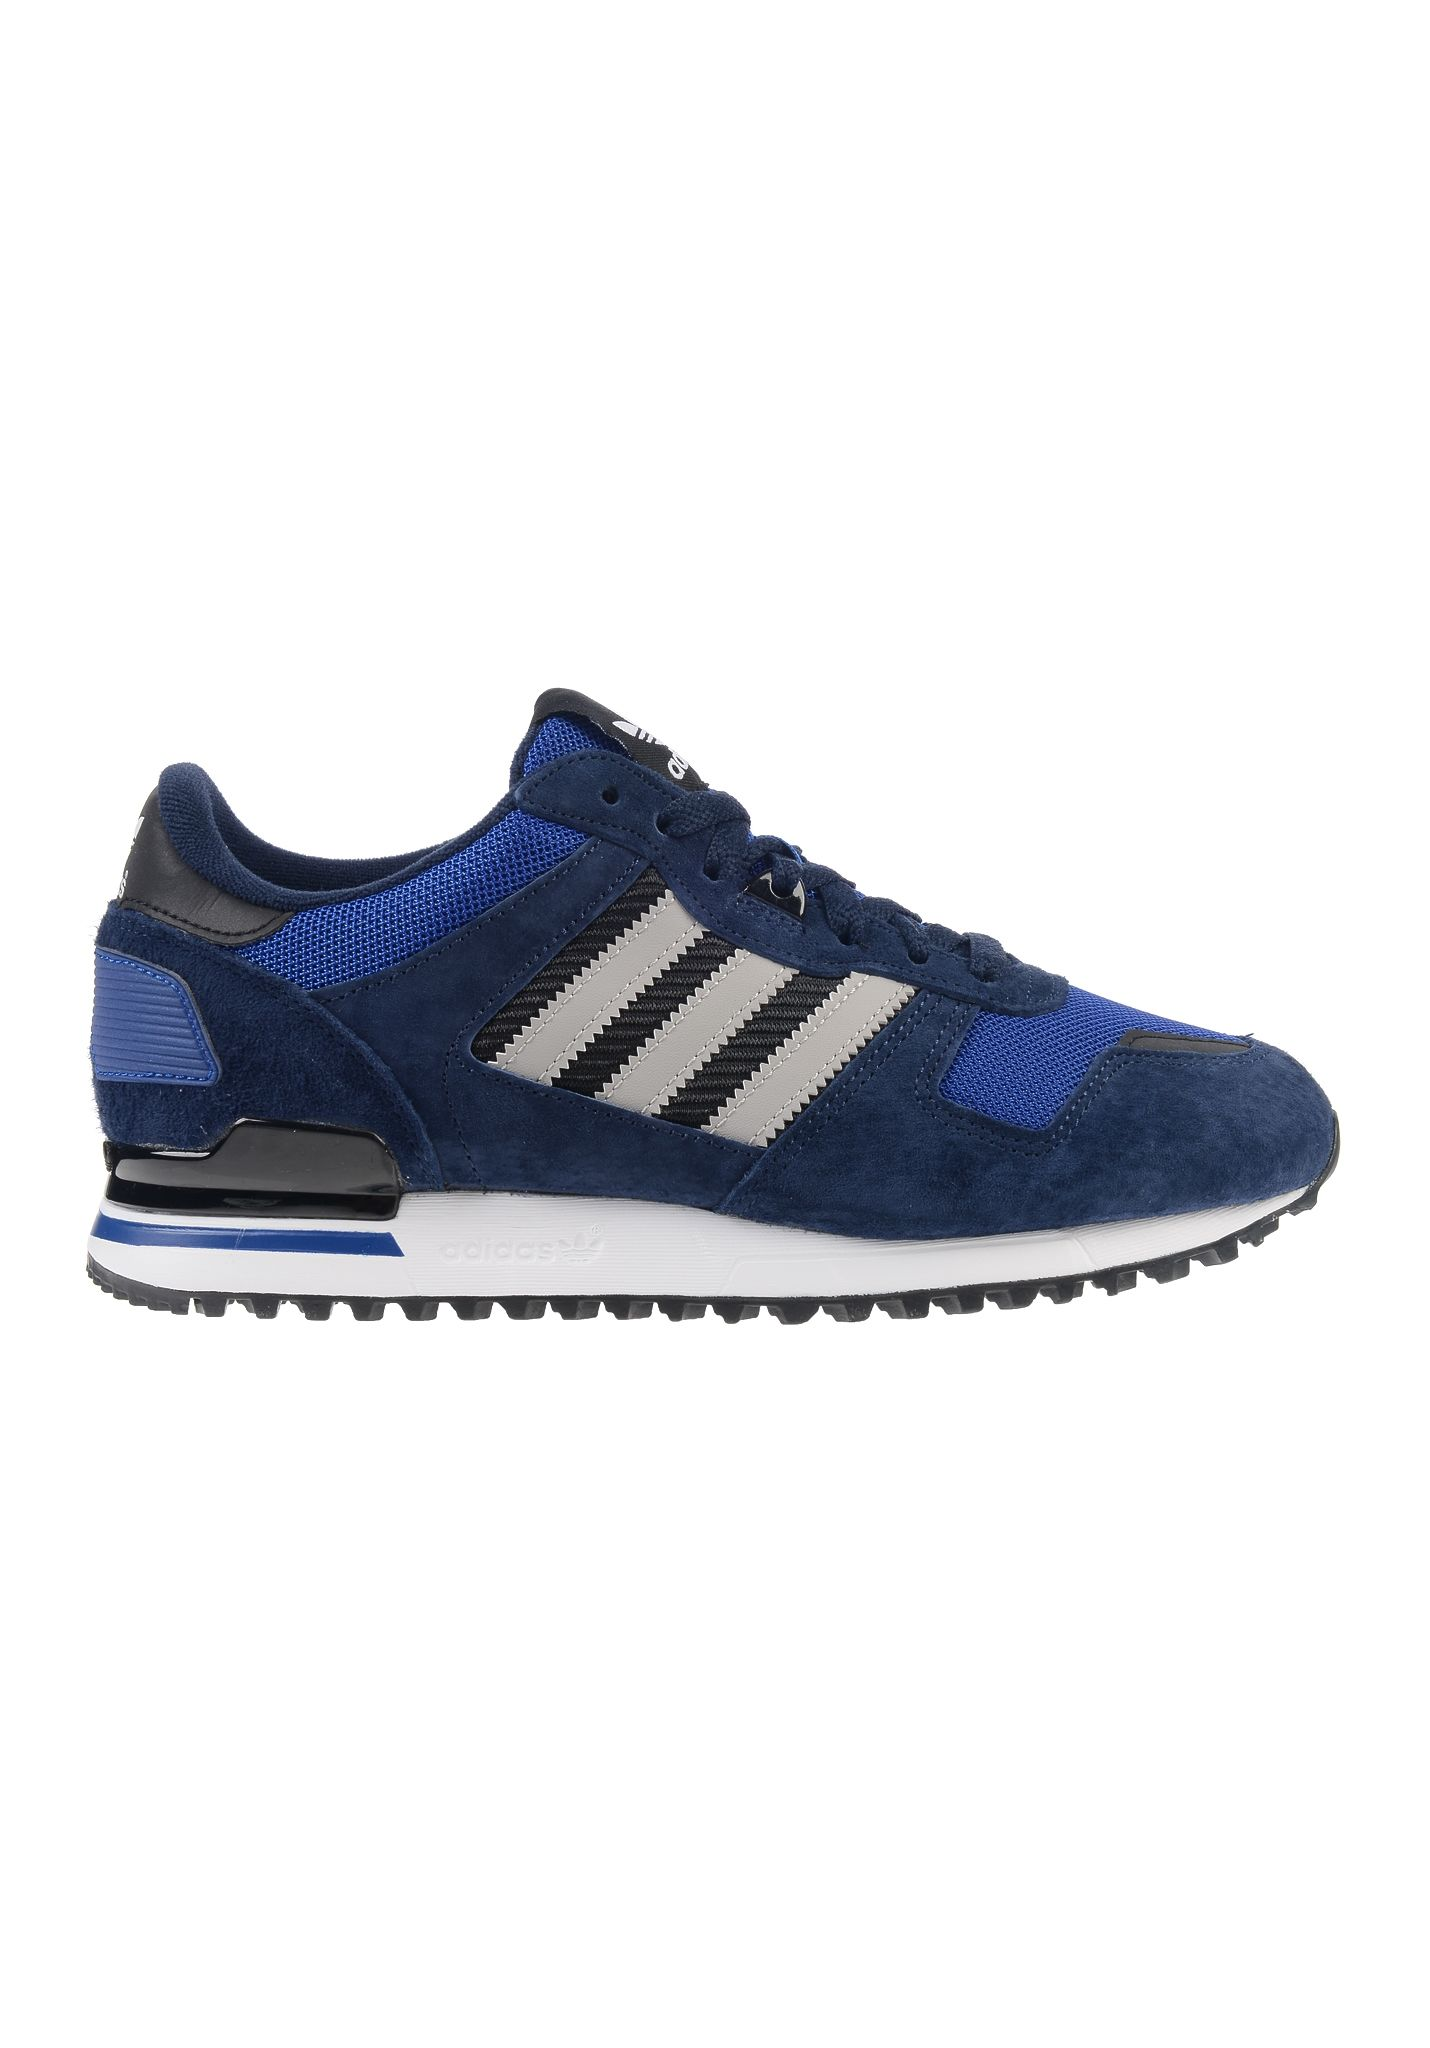 adidas herren sneaker blau o ton. Black Bedroom Furniture Sets. Home Design Ideas